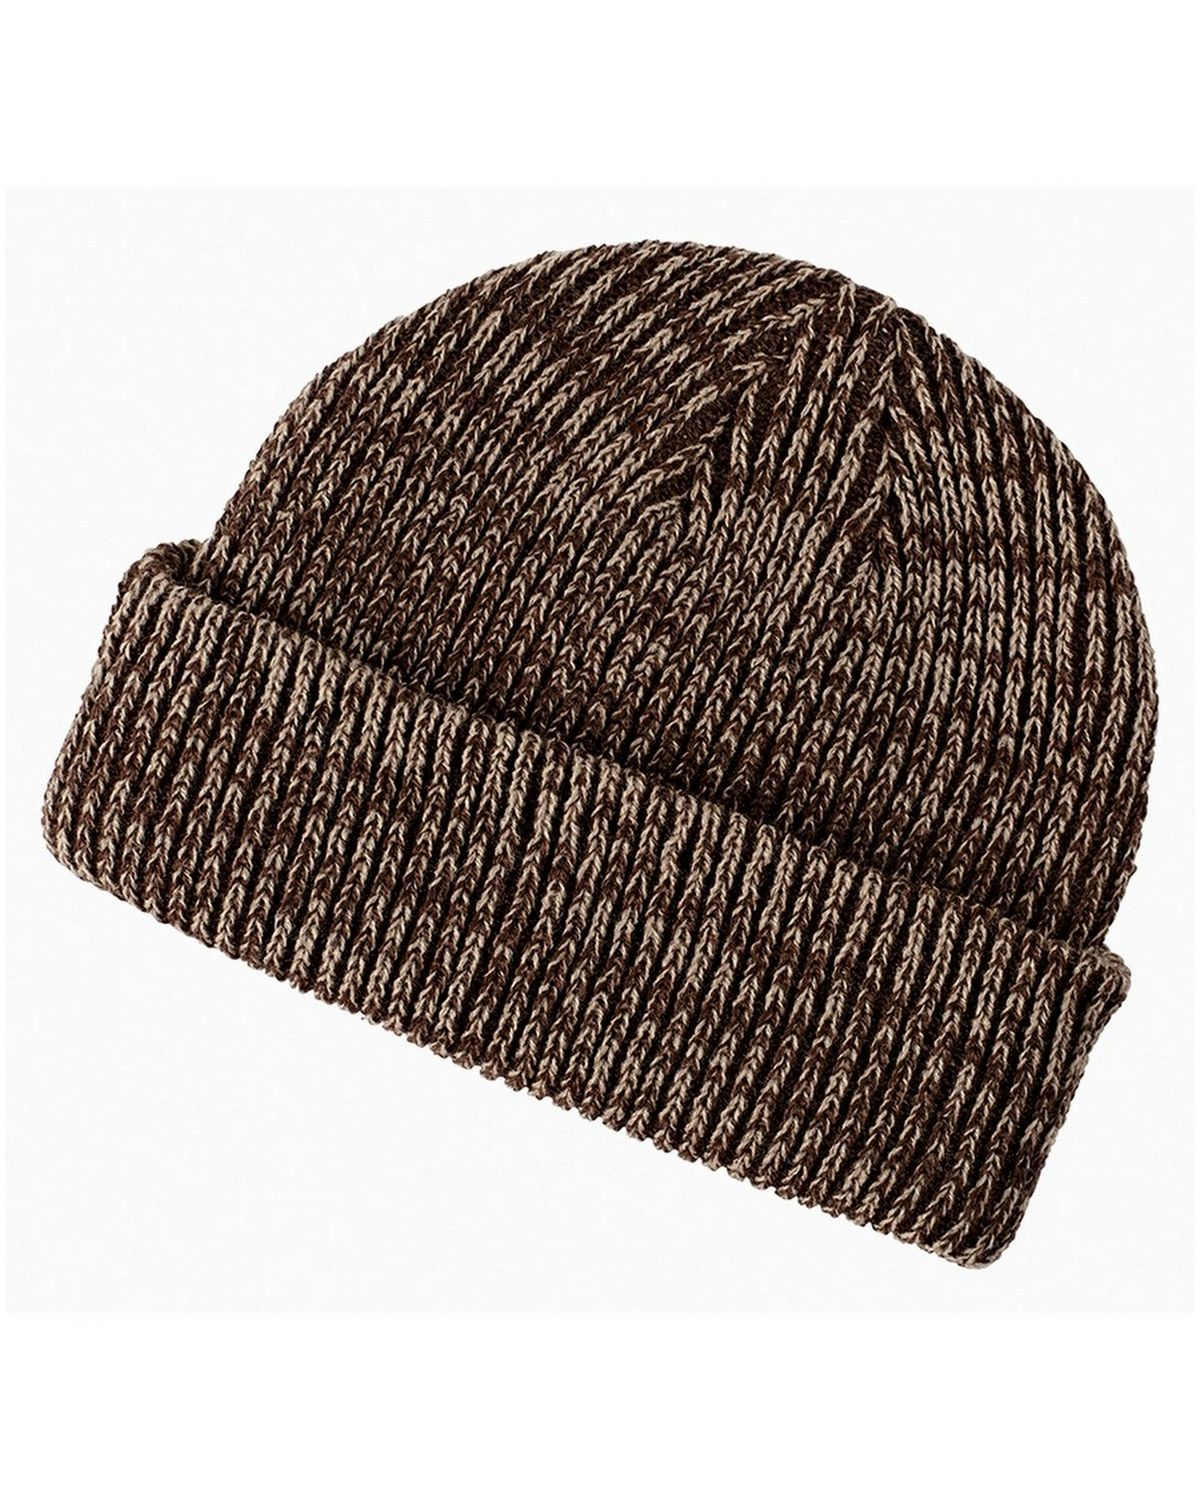 Big Accessories BA524 Marled Beanie - Brown/Khaki - One Size BA524